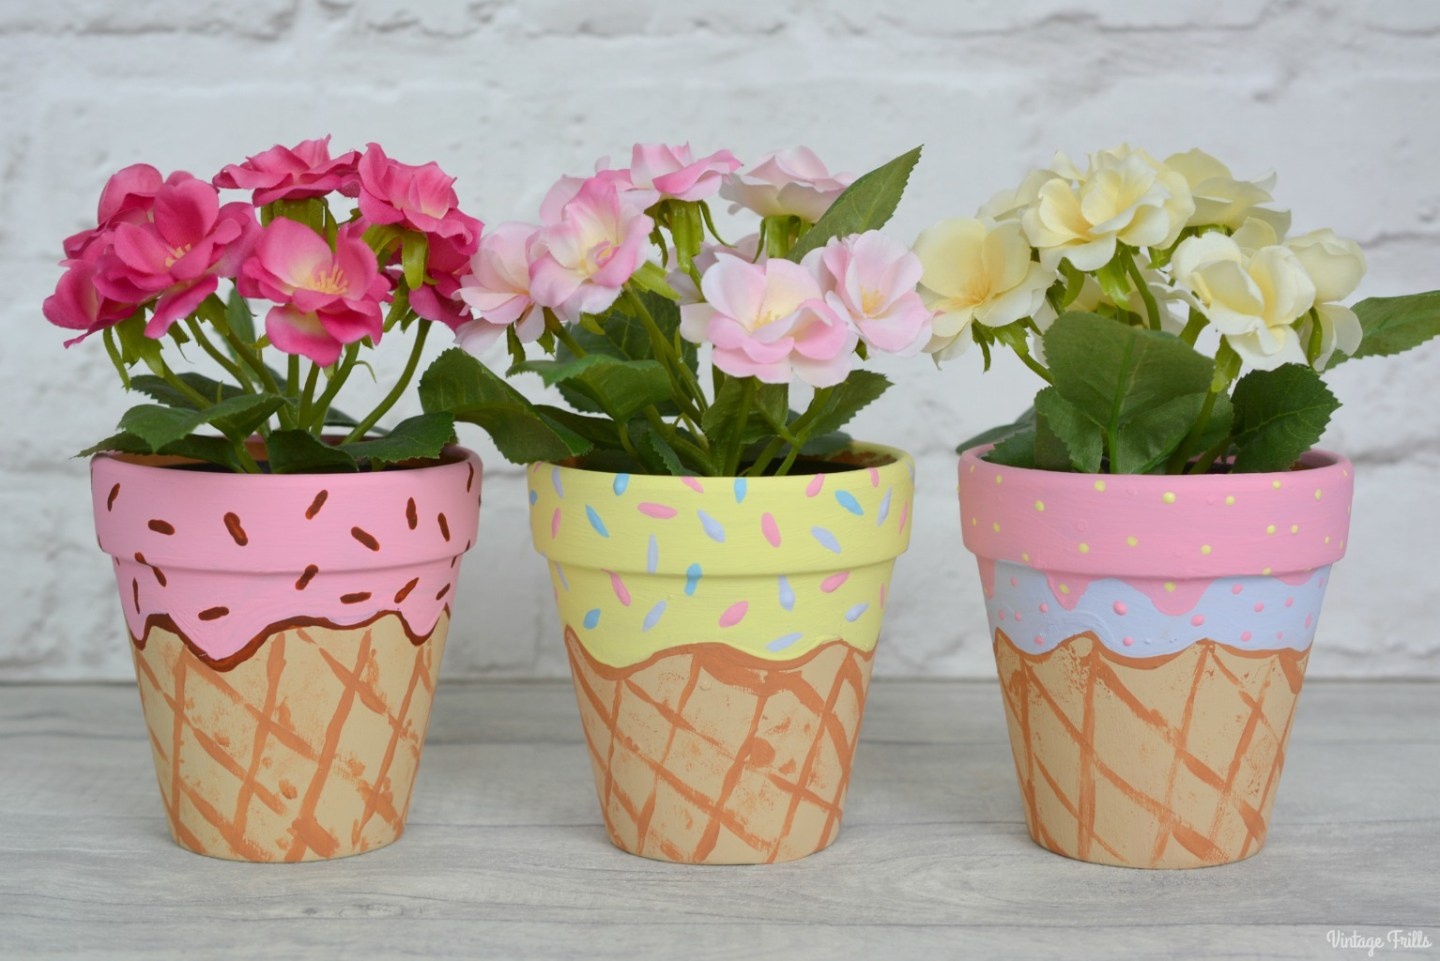 The Ice Cream Theme Pretty Plant Pots For Lilas Room Vintage Frills